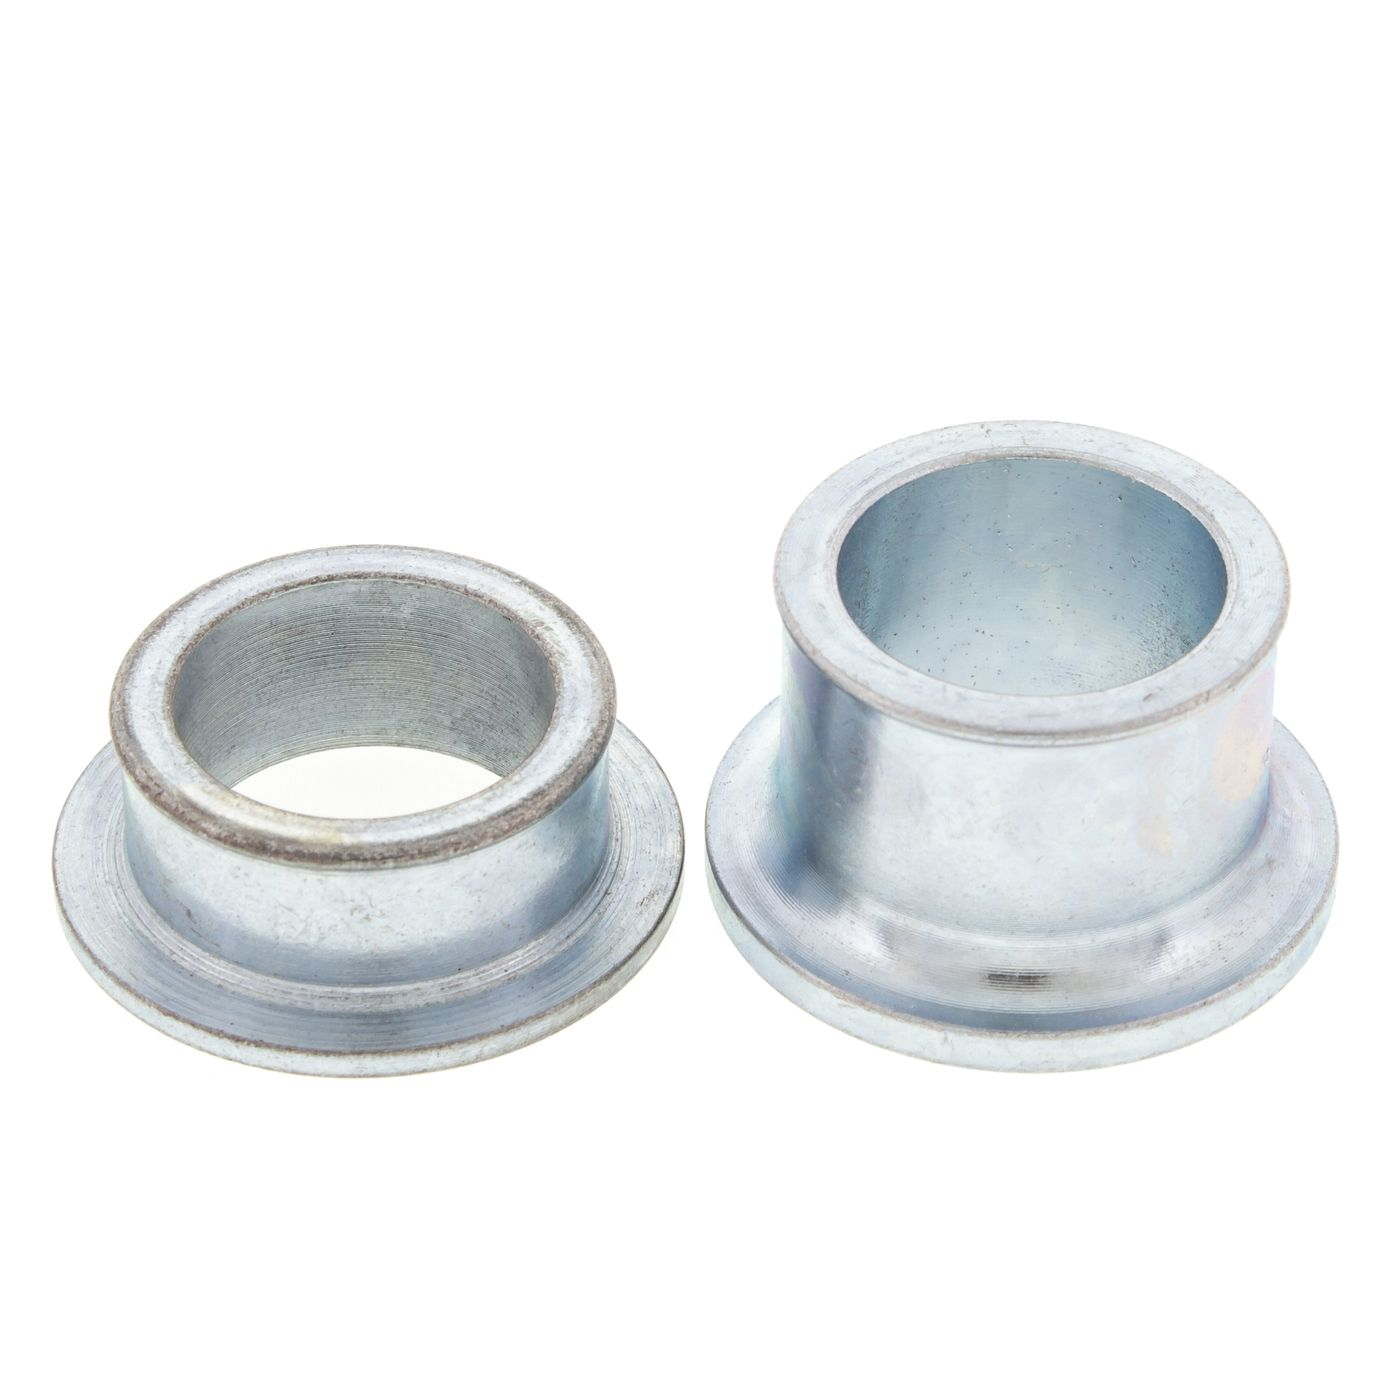 wrp rear wheel spacer kits - WRP111044 image